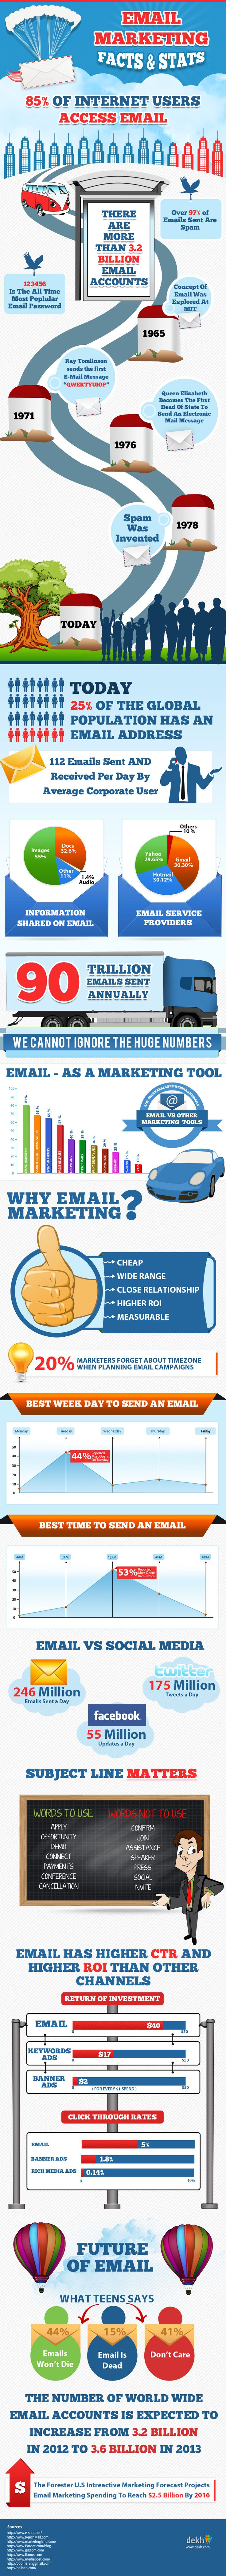 Email marketing infographic  #infographic